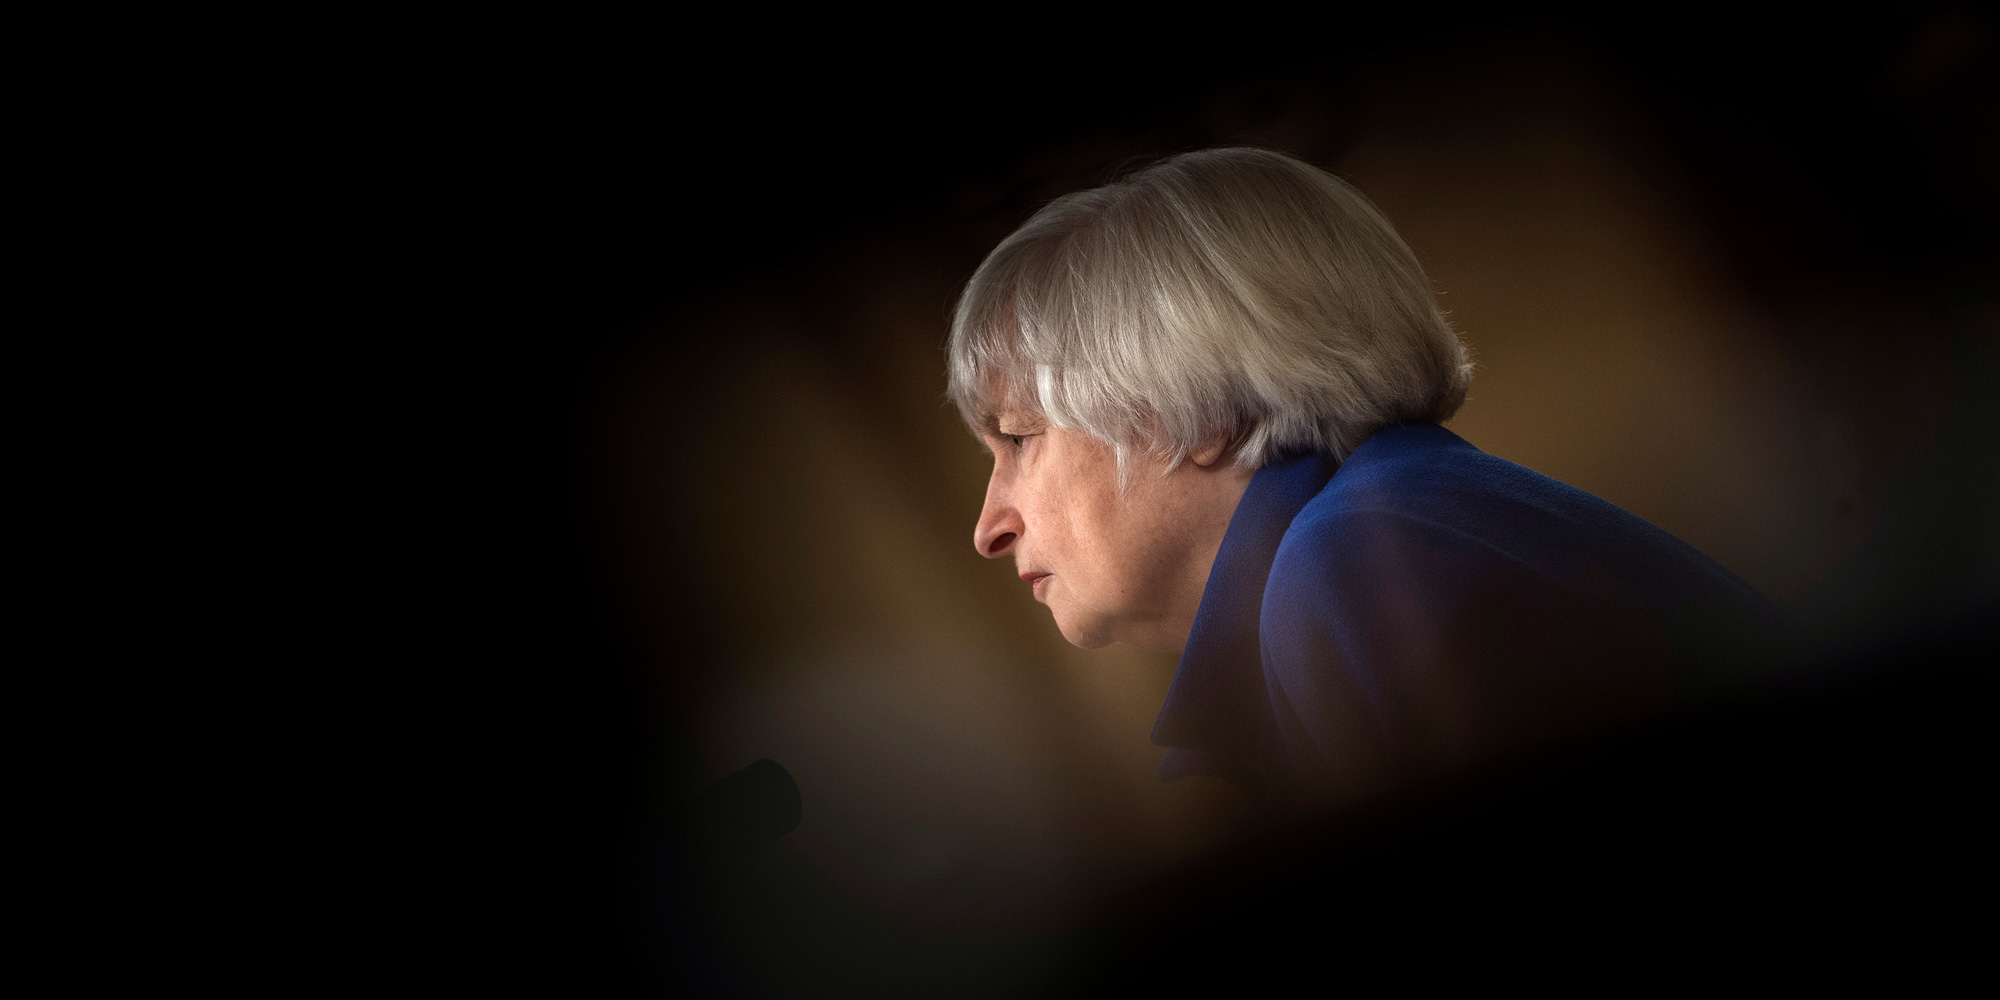 As Fed Chair, Janet Yellen Discounted Economic Desperation. The Pandemic Will Likely Force a Different Approach.